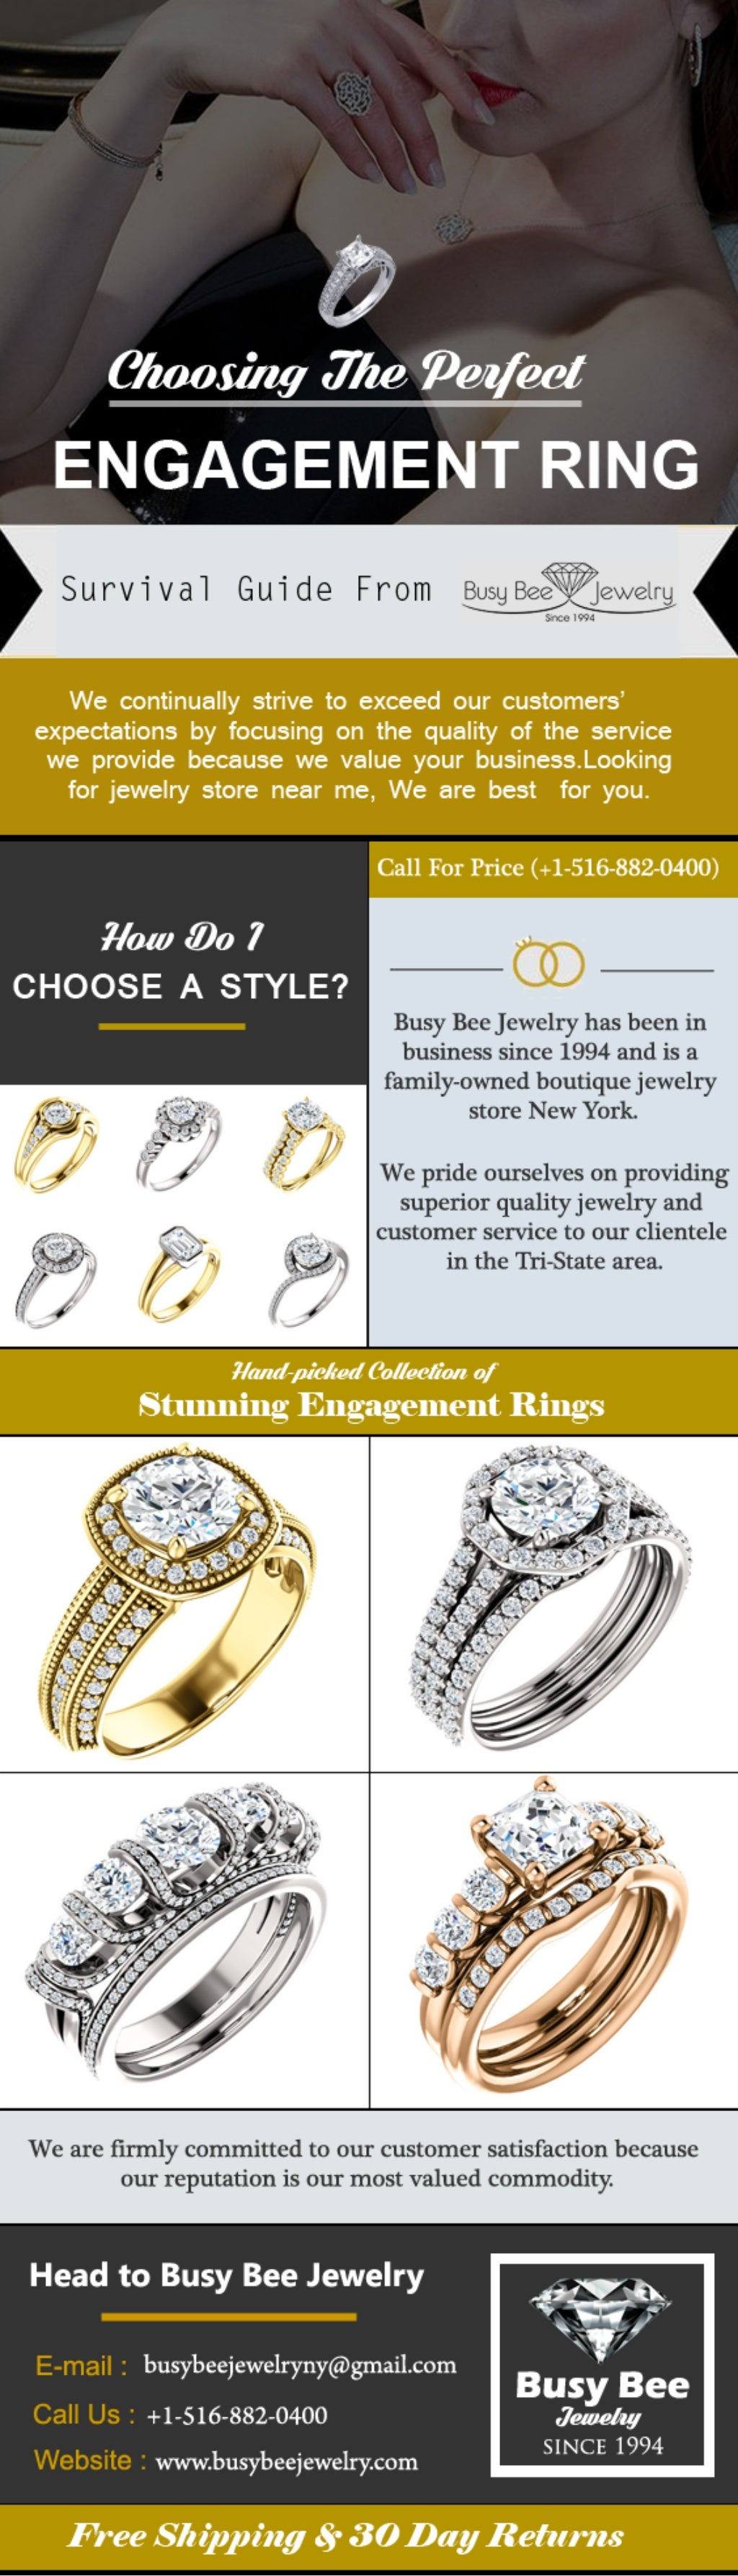 perfect beth millner choosing img rings engagement ring jewelry business the blogs blog